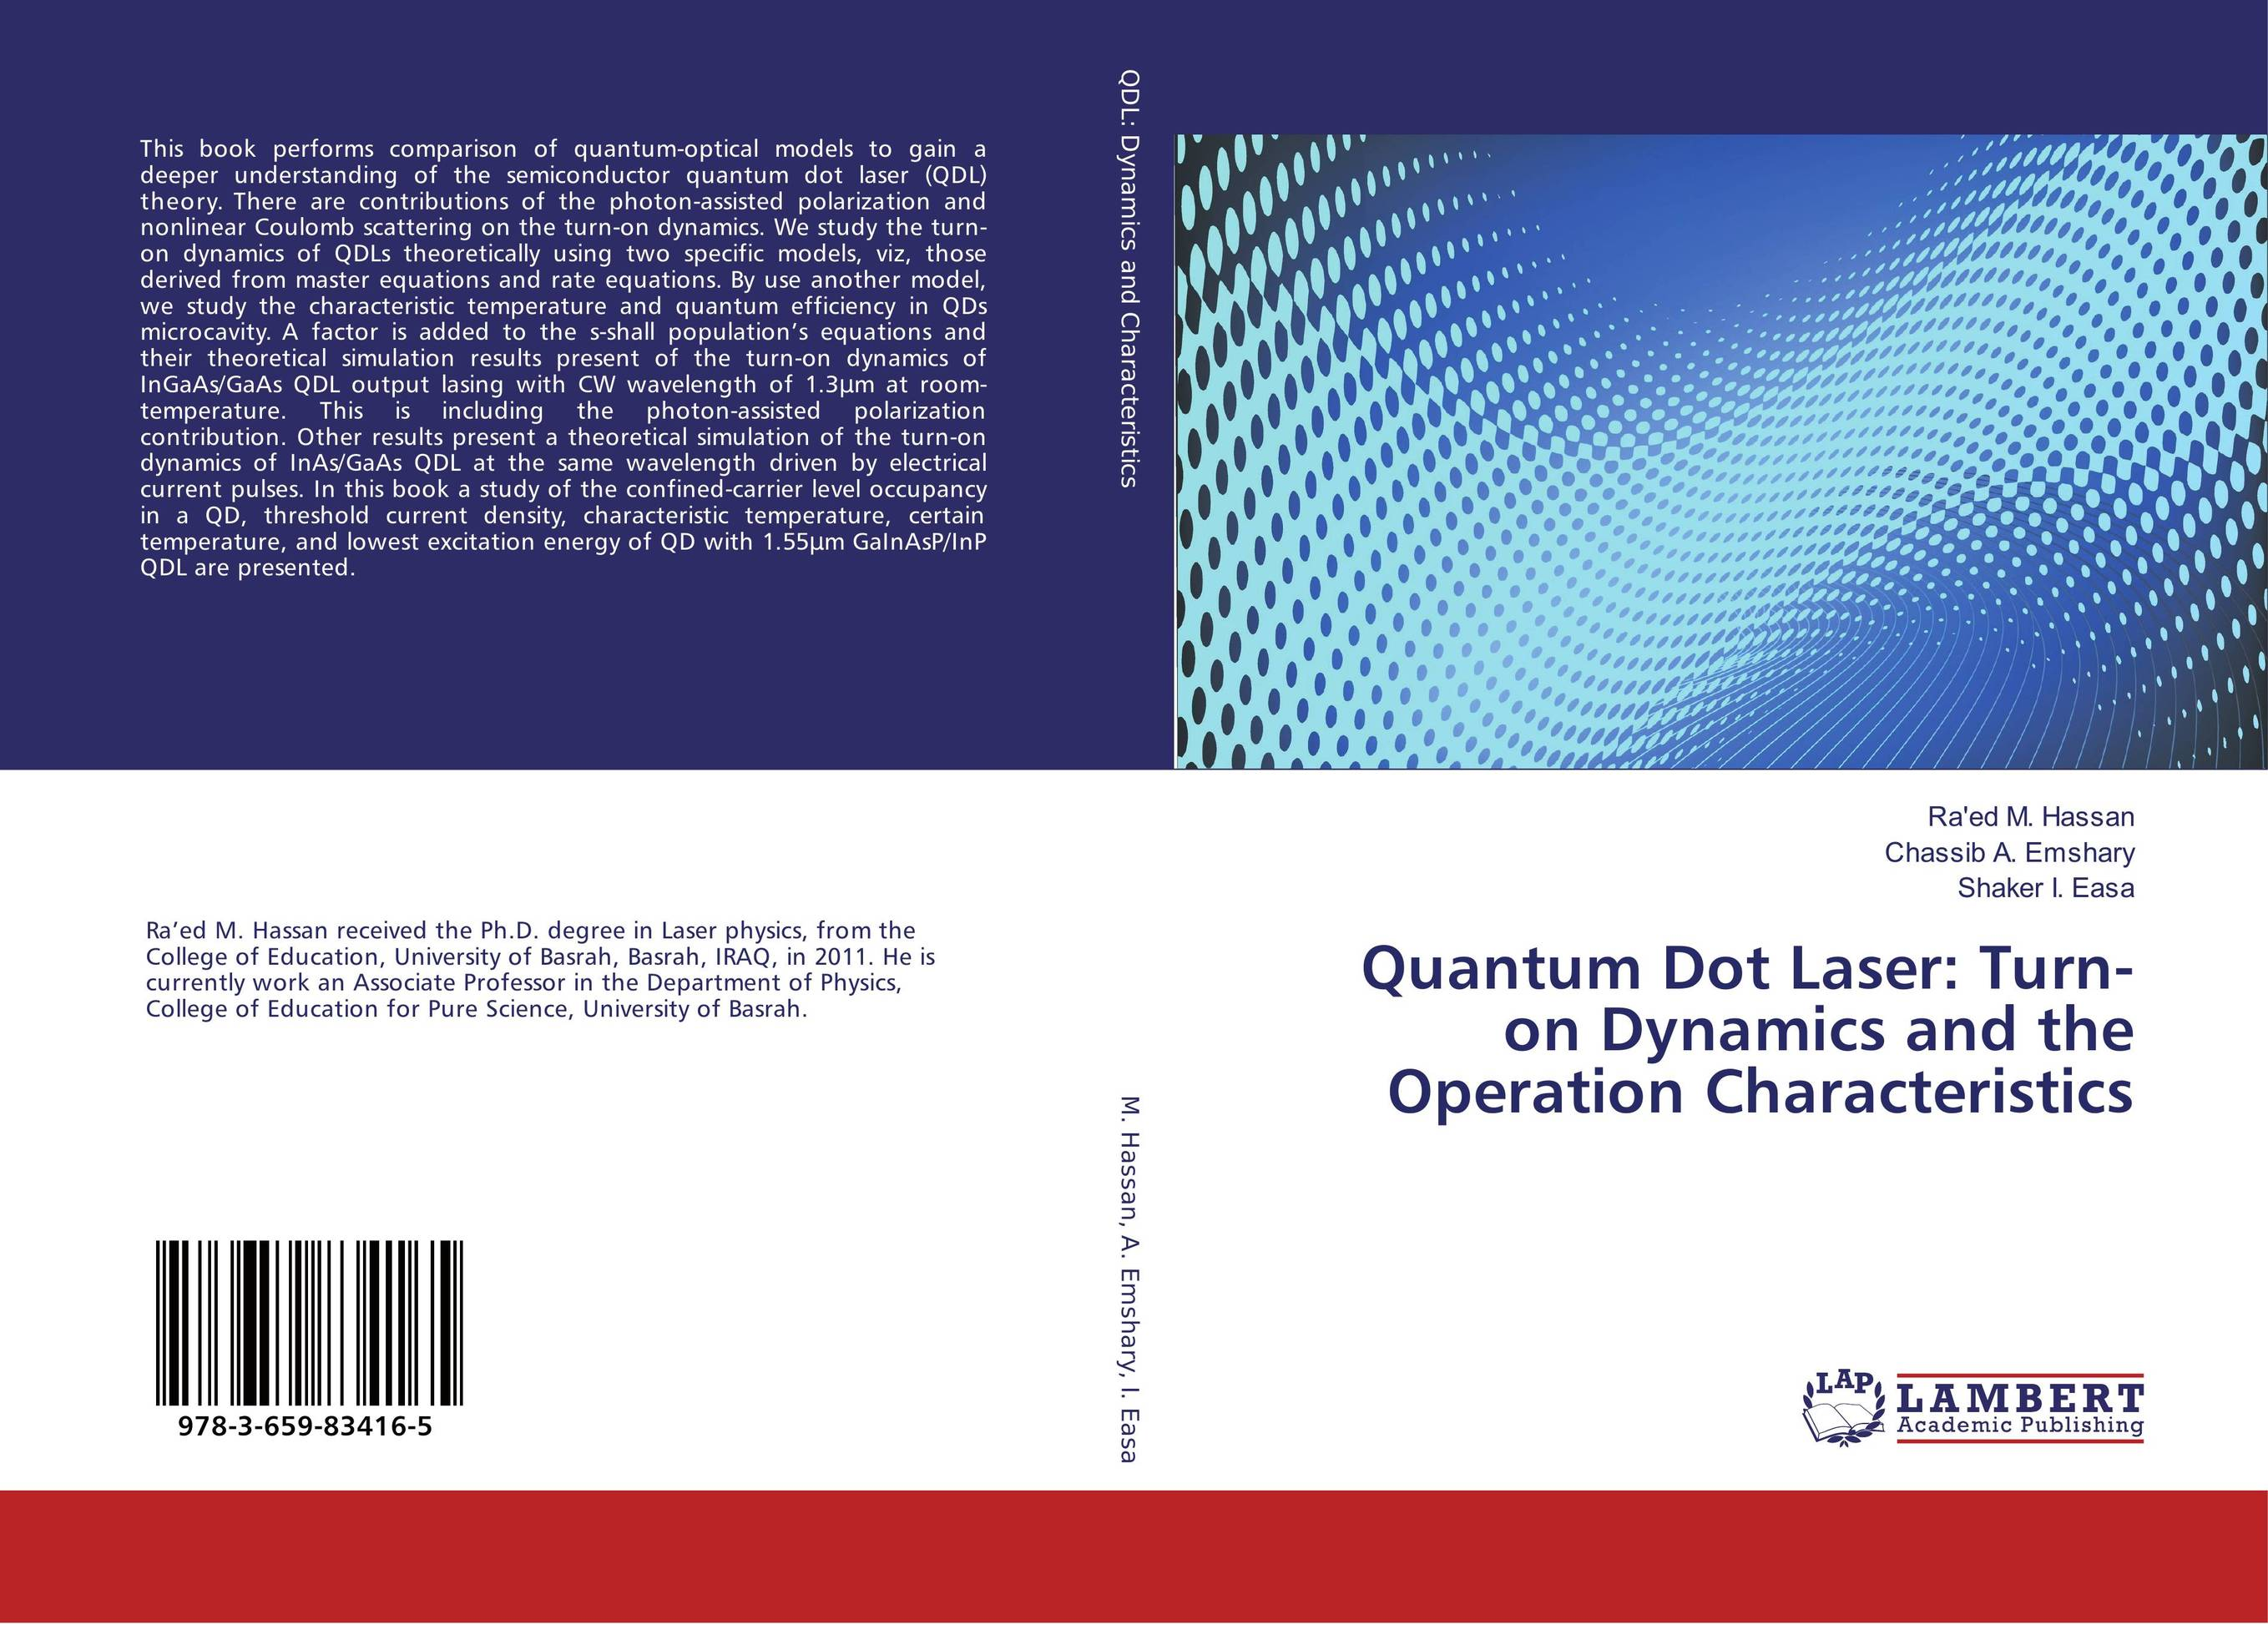 Quantum Dot Laser: Turn-on Dynamics and the Operation Characteristics